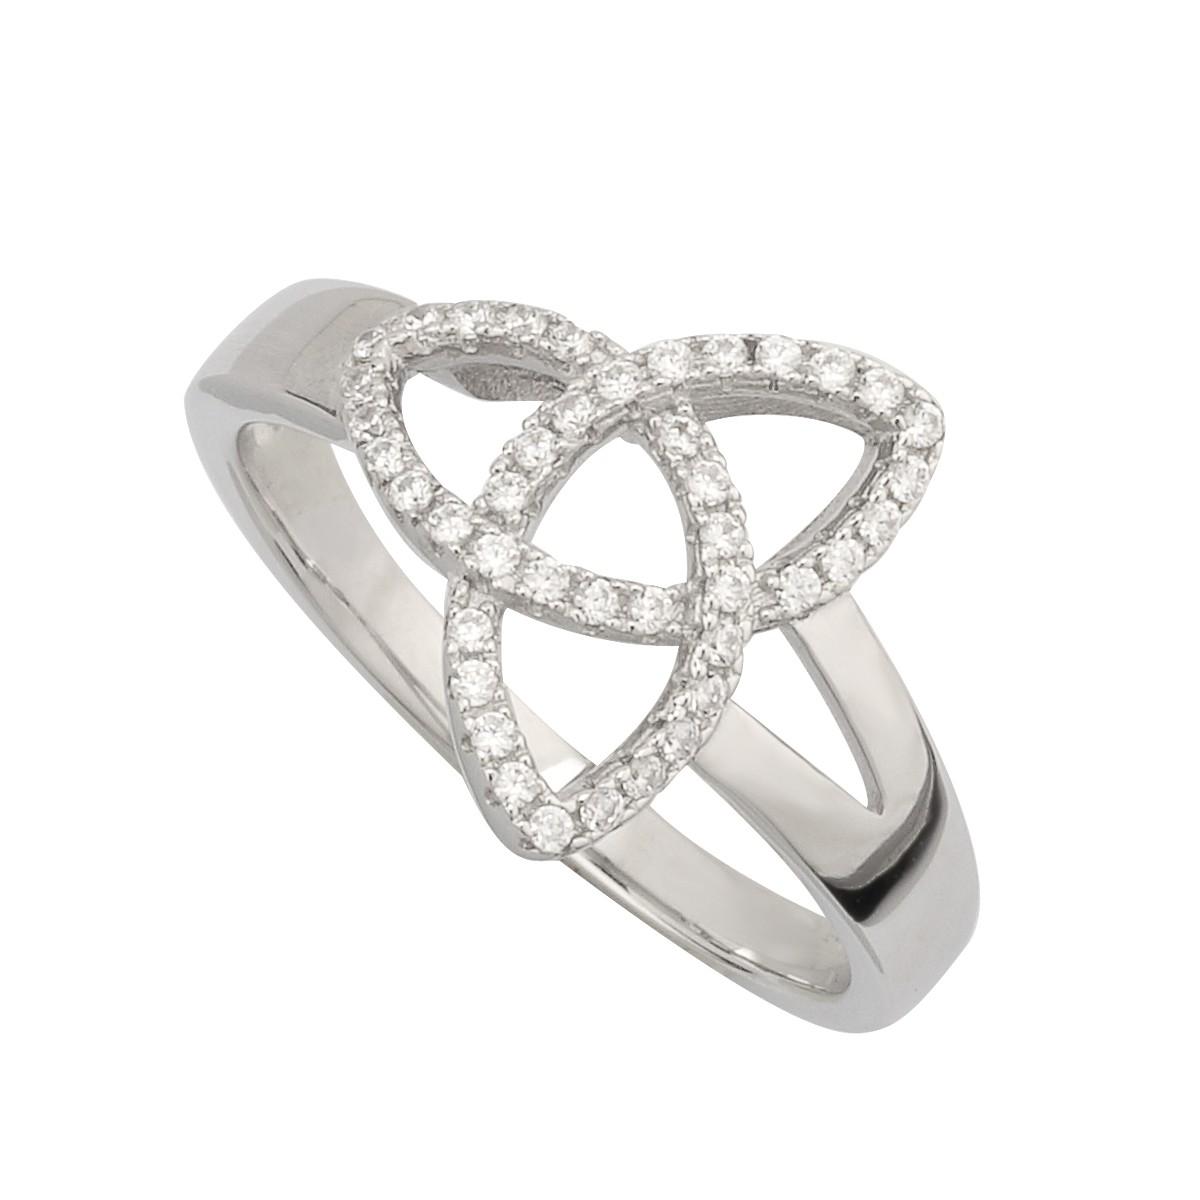 Trinity Knot Ring with Cubic Zirconia